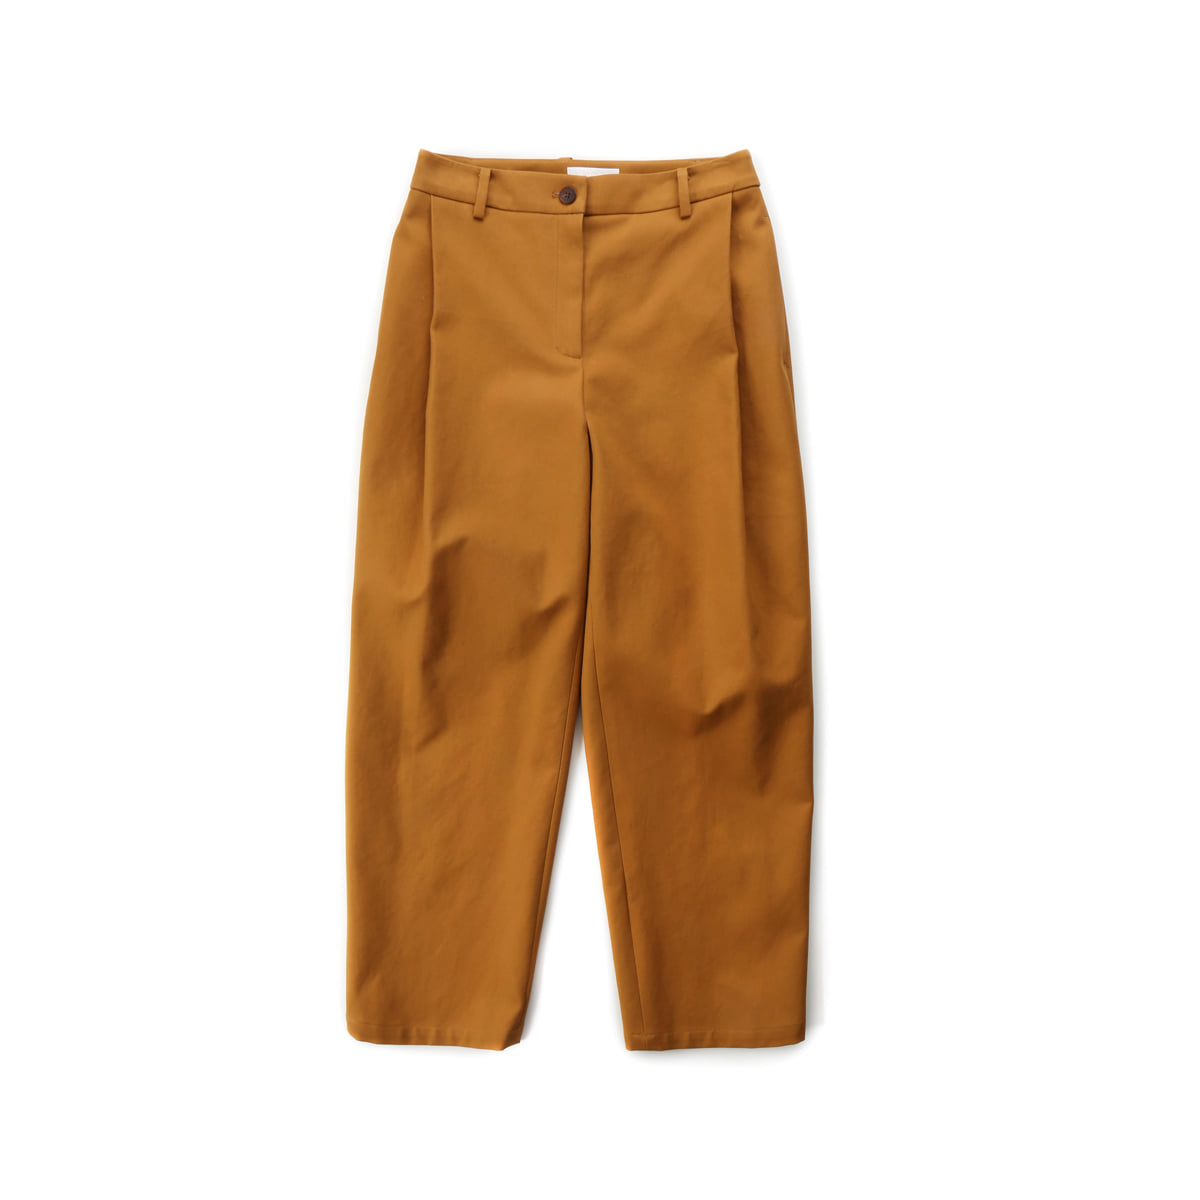 [MUSED] SALENA TUCK PANTS 'CARAMEL COTTON'